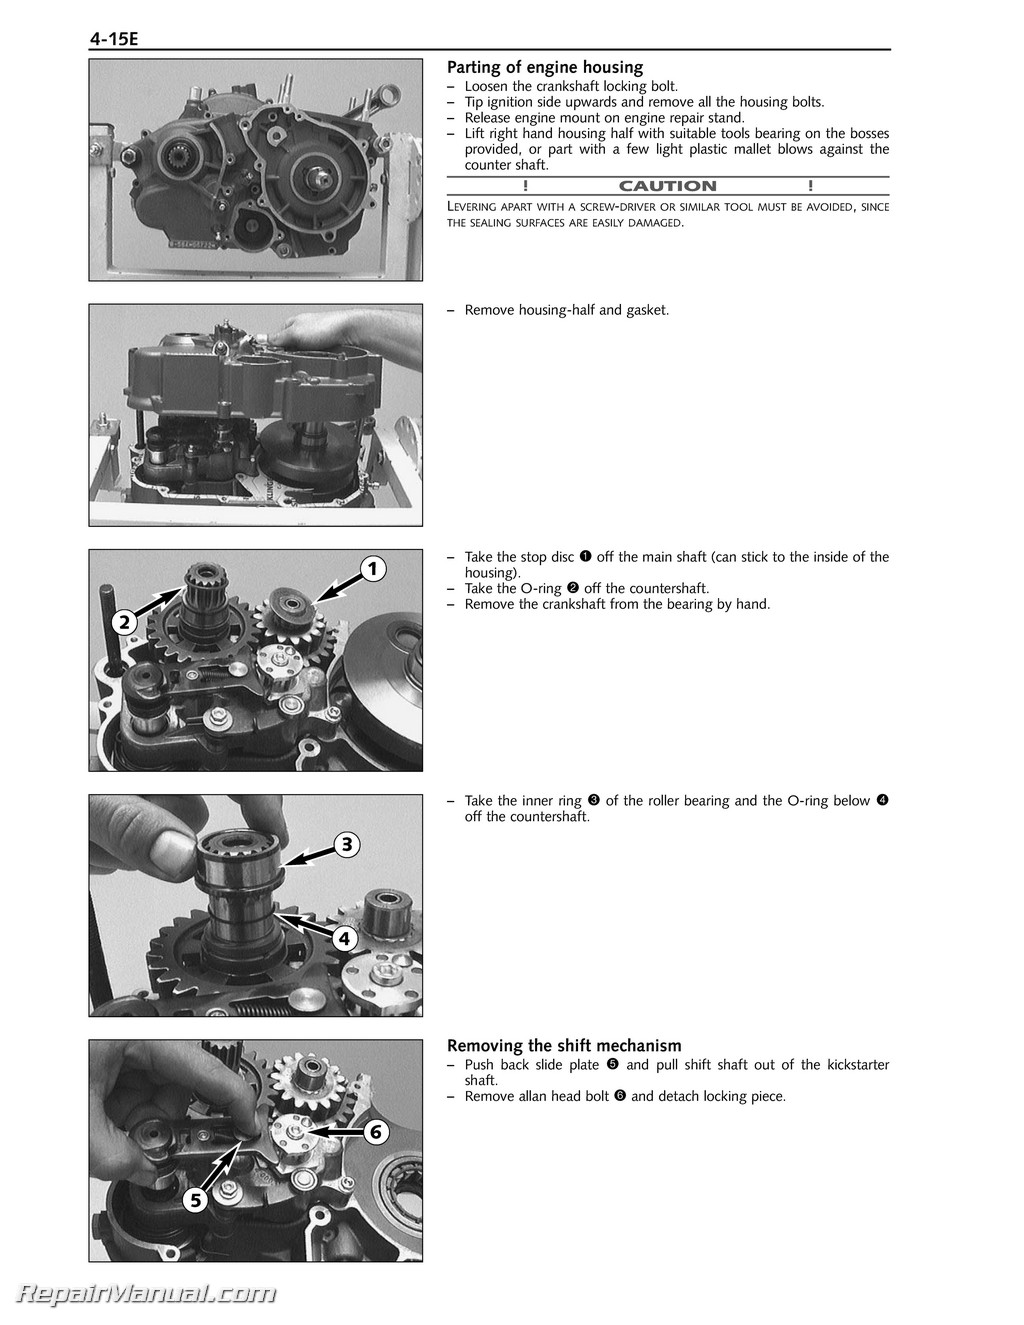 1998 2005 ktm 400 660 lc4 paper engine repair manual rh repairmanual com ktm lc4 repair manual download free ktm lc4 640 repair manual pdf